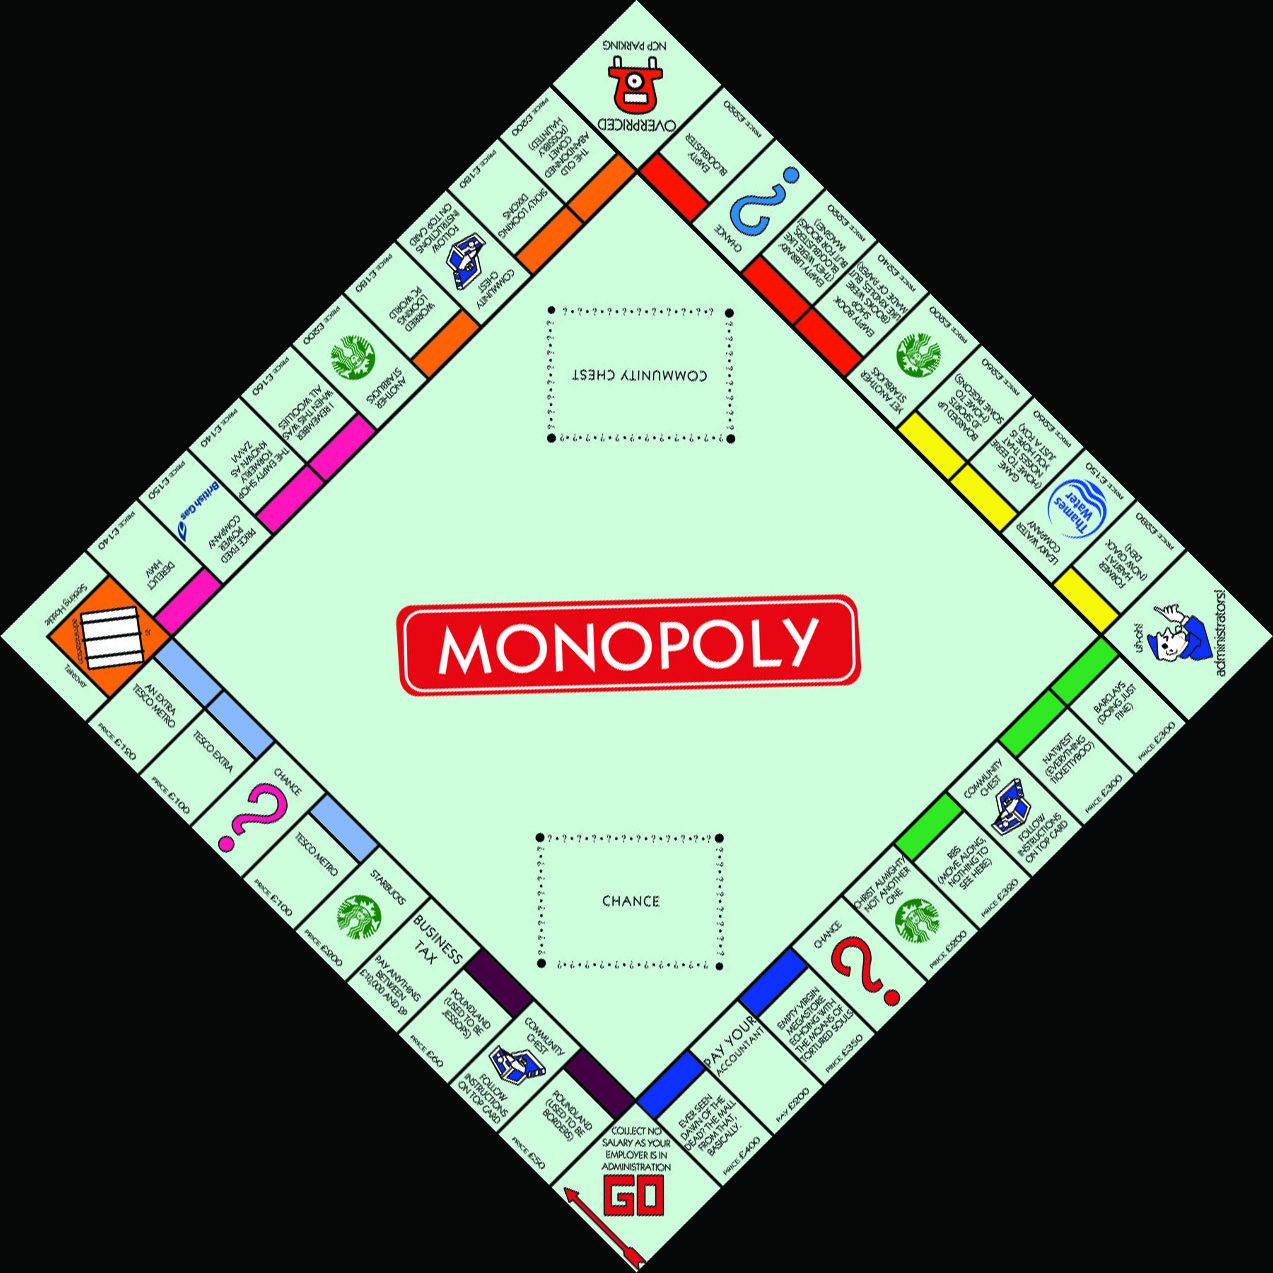 home images monopoly board layout monopoly board layout facebook ...